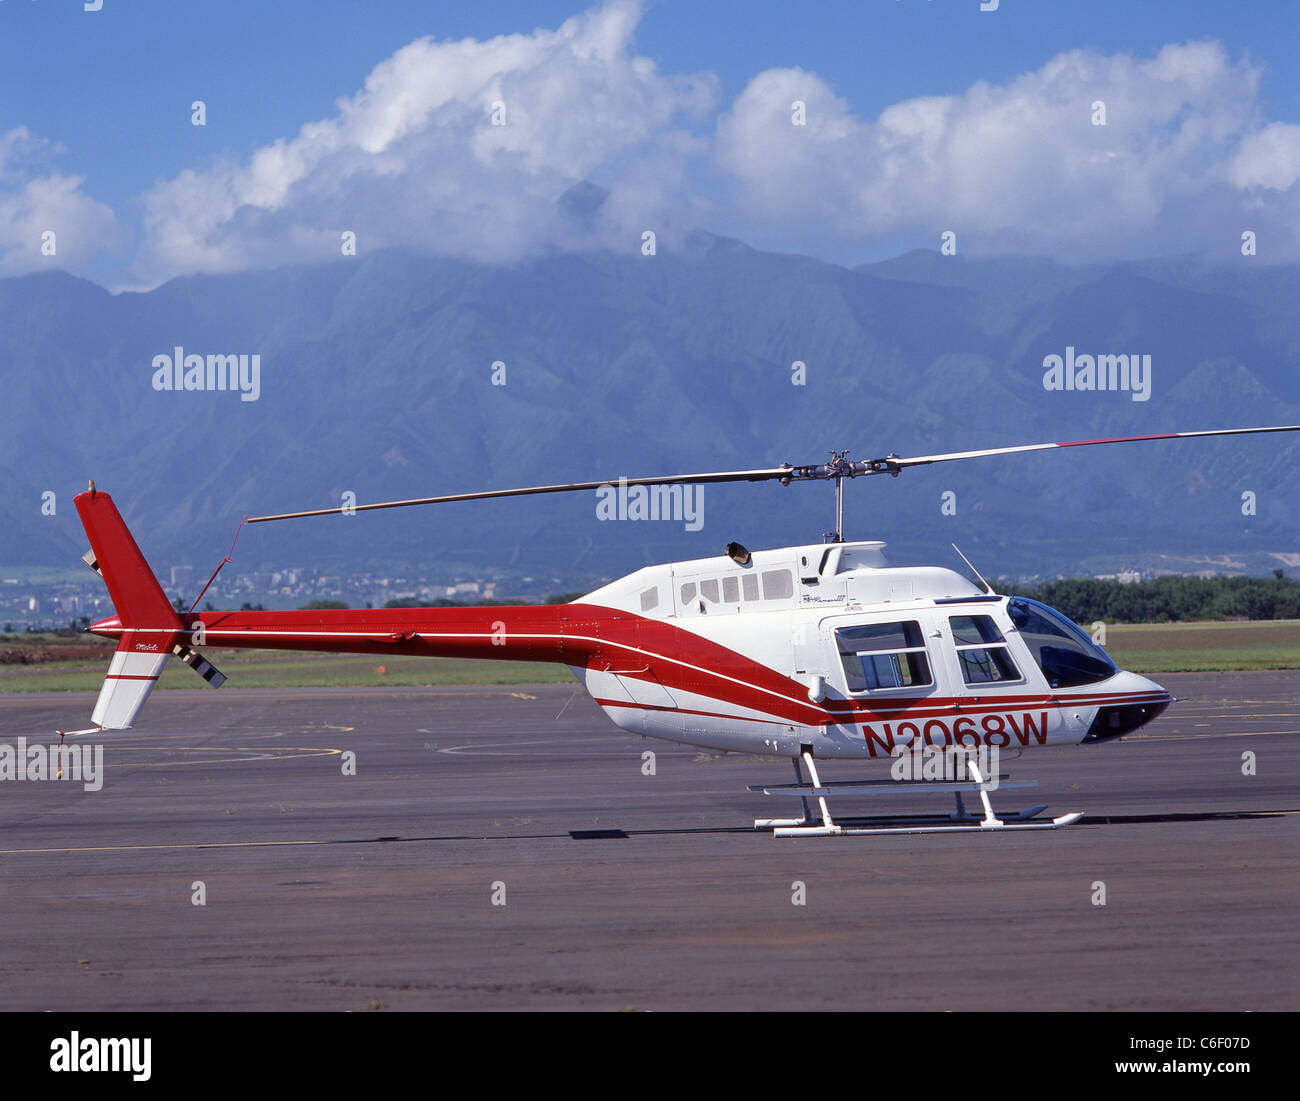 Maui sightseeing helicopter, Maui, Hawaii, United States of America Stock Photo